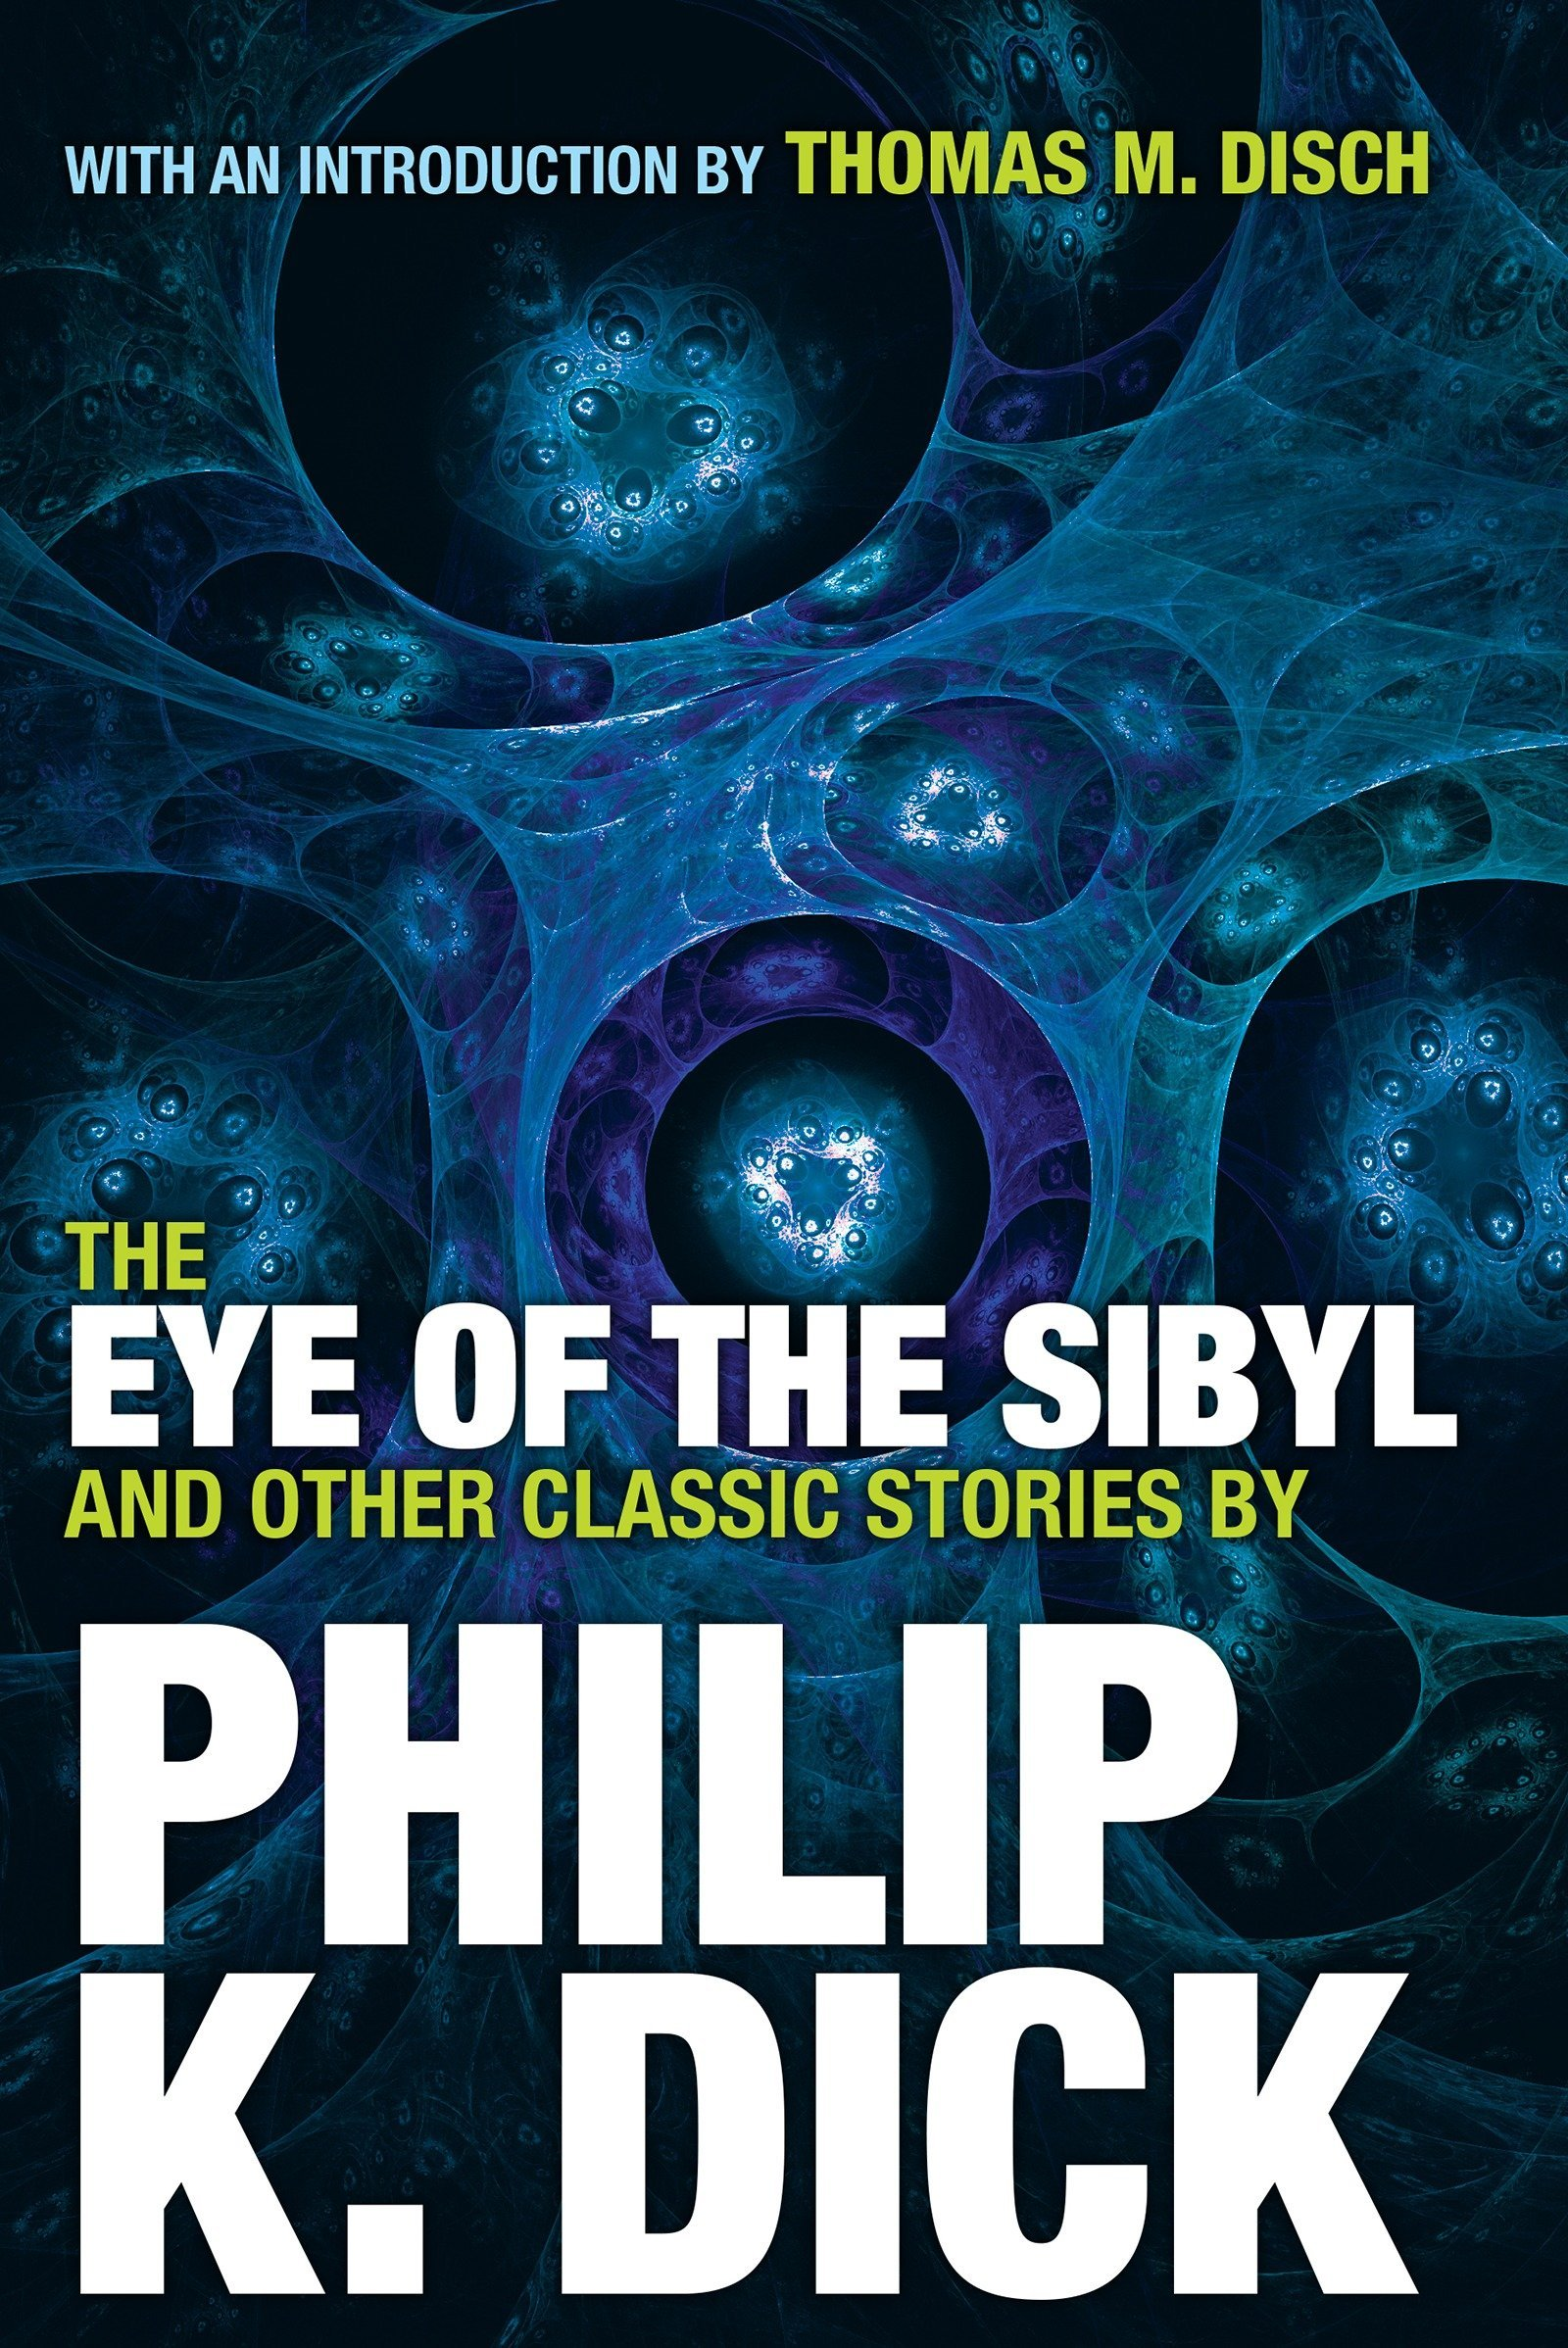 The Eye of the Sibyl and Other Classic Stories by Philip K. Dick